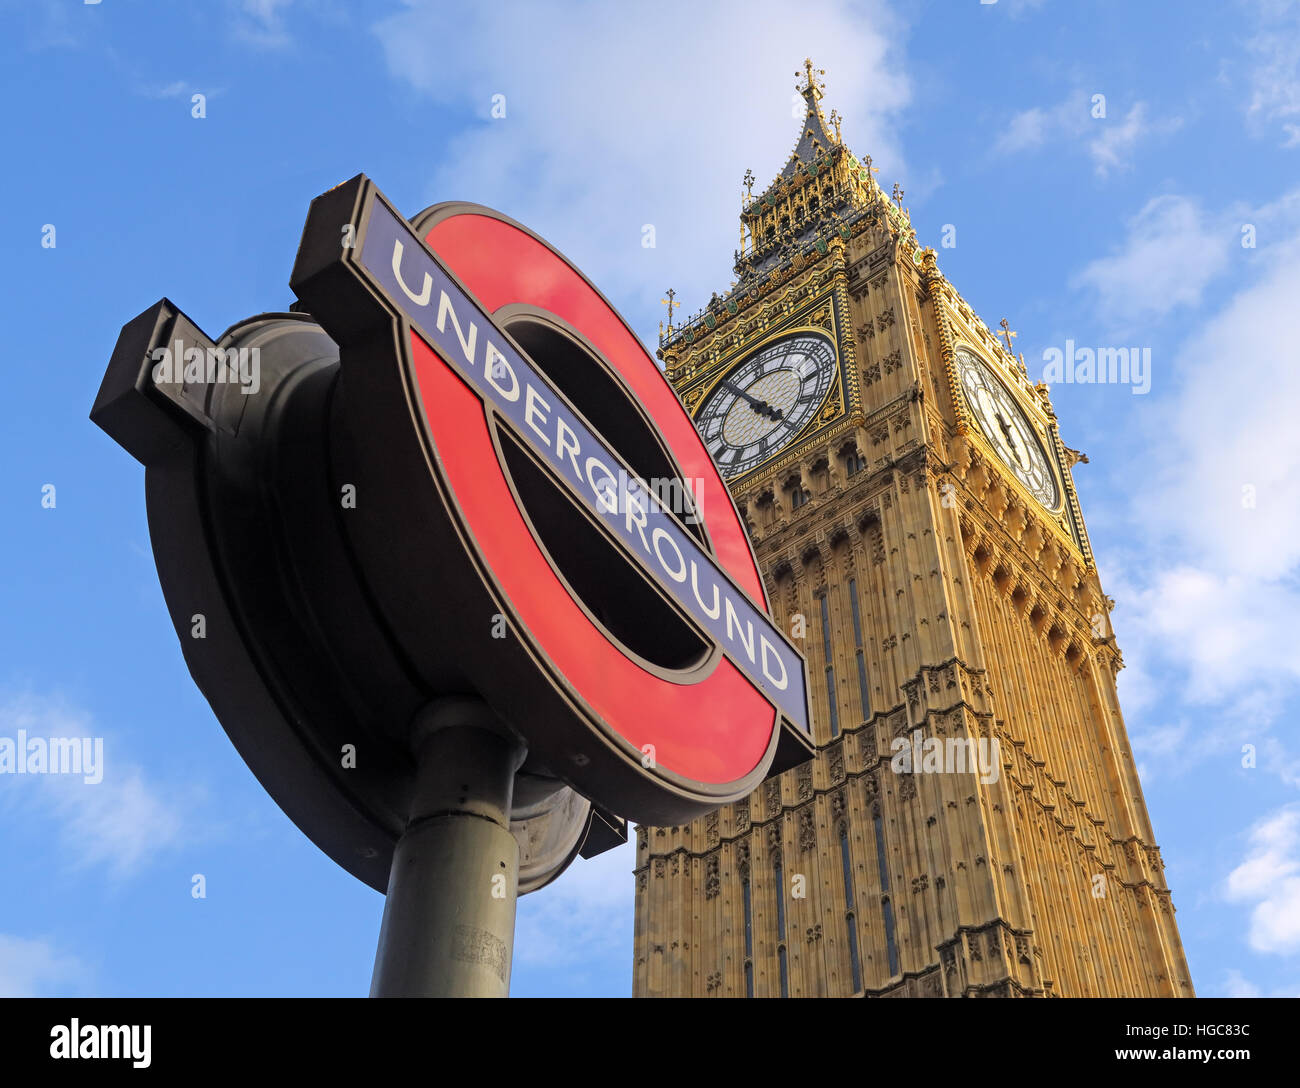 England,UK,LDN,sign,Tube,sign,mother,of,all,big,ben,politics,political,iconic,icon,London